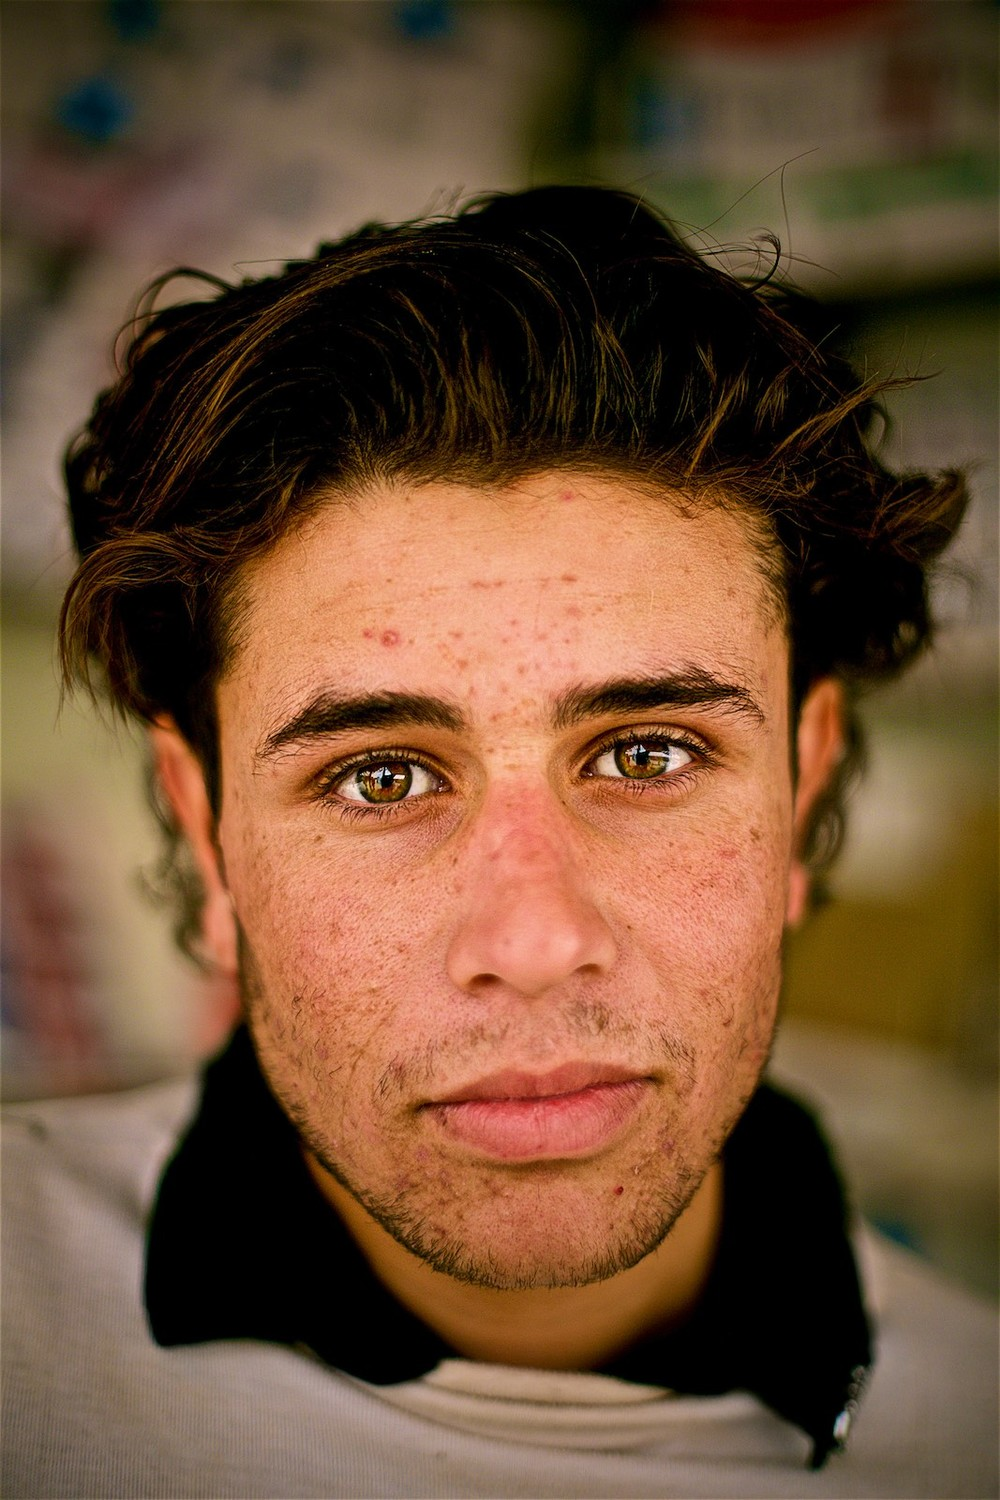 Majd says that the constant dust-storms and lack of proper structure for hygiene (lack of running water, for example), makes everyone sick for prolonged periods of time here. He especially loathes the acne that developed on his face after his arrival to the camp. (photo: Denis Bosnic)